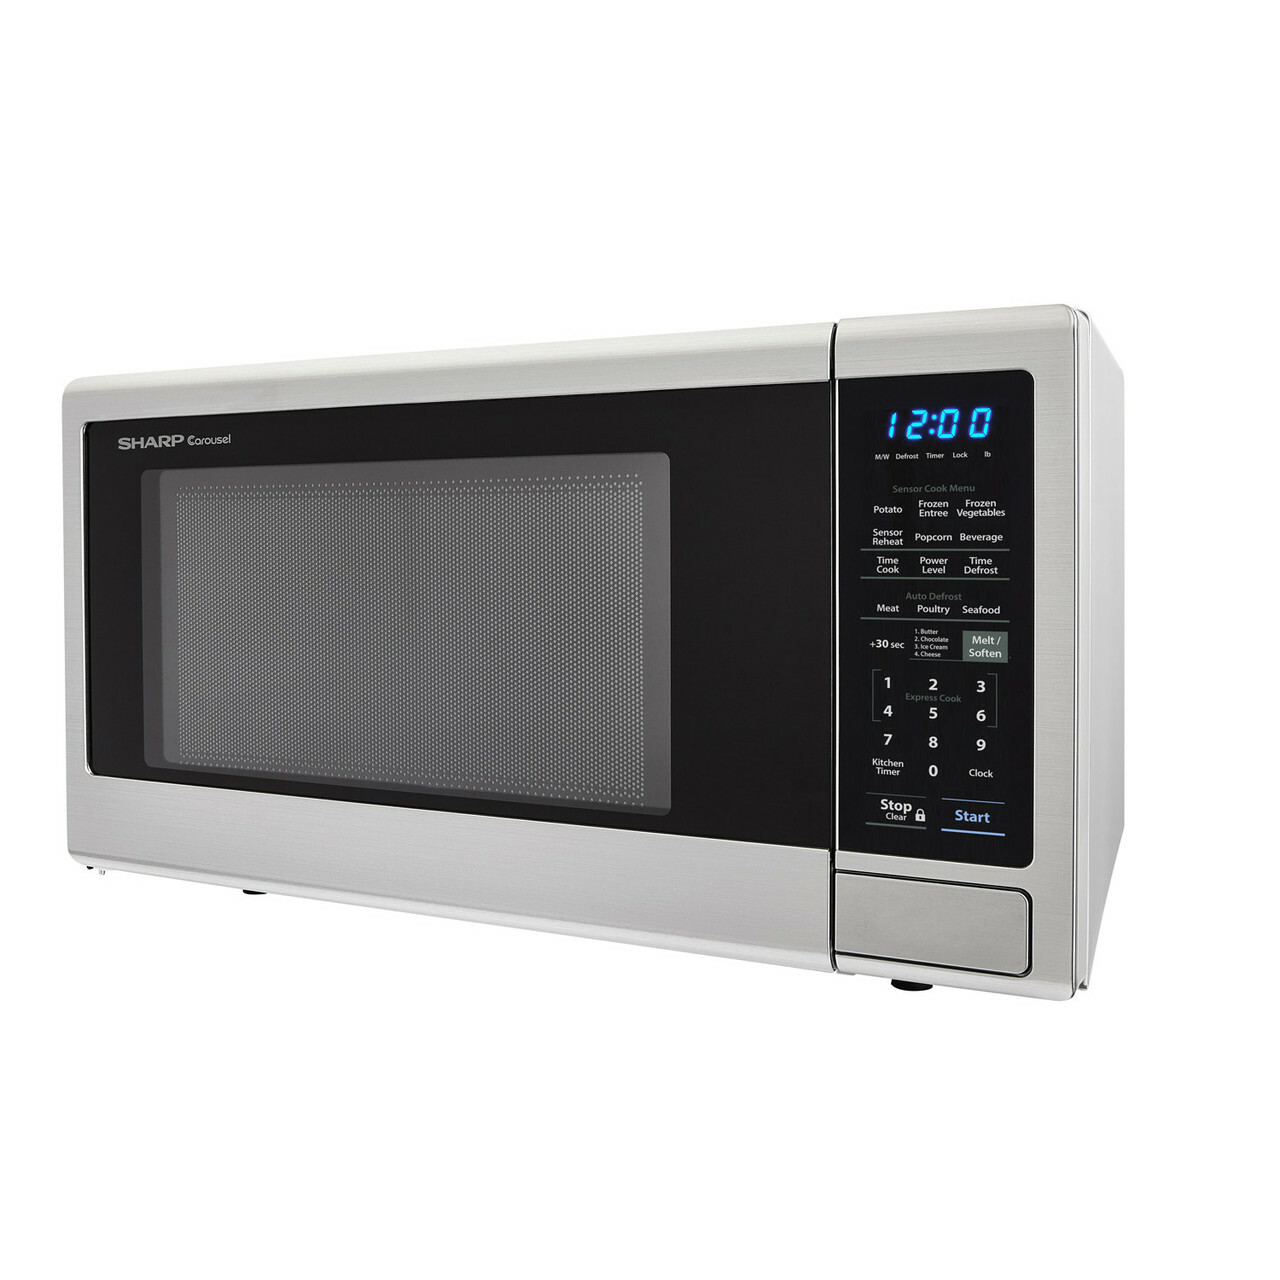 1.4 cu. ft. Sharp Stainless Steel Countertop Microwave (SMC1442CS) – left side view